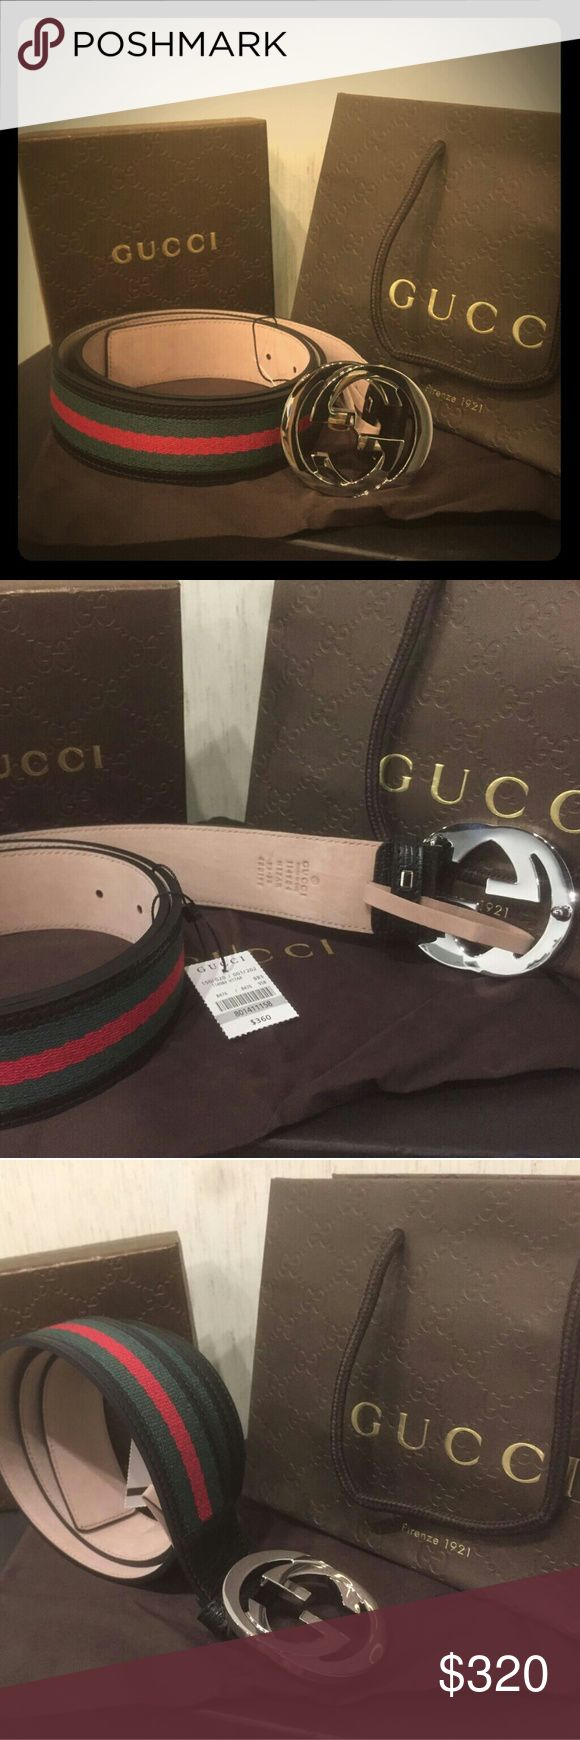 New Gucci Black Green Red signature monogram belt New 100 percent Authentic Gucci black green red signature monogram belt!! I have multiple sizes in stock. Has a silver buckle comes with Gucci box, dust bag and tags. Ships out within one business day of purchase, message me if you have any questions. Price is firm reasonable offers will be taken, but only if reasonable! Gucci Accessories Belts